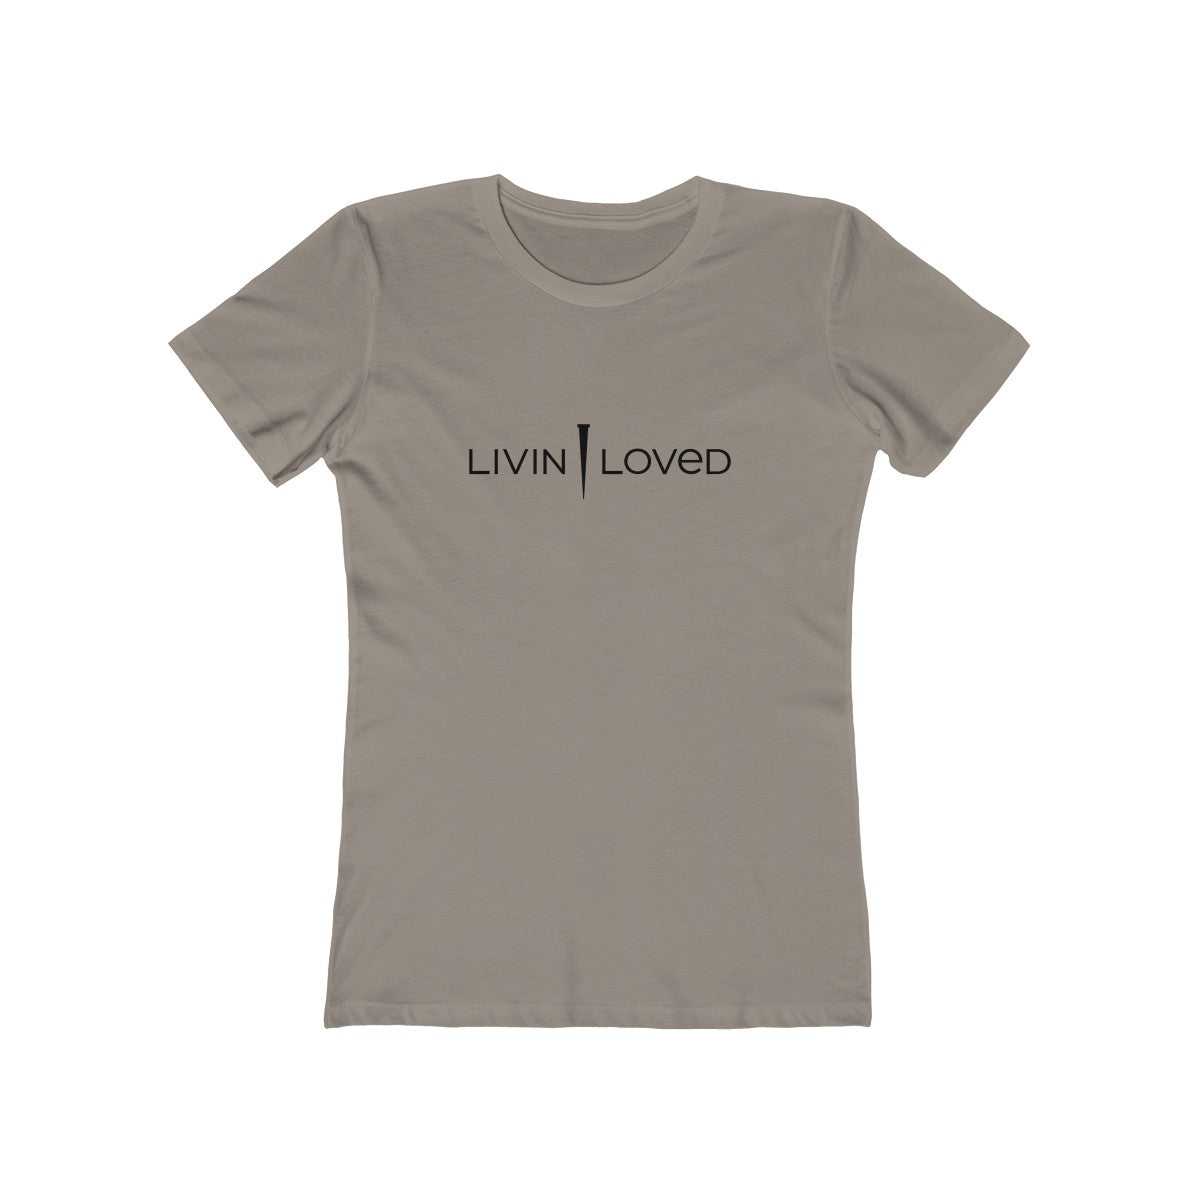 Livin Loved Women's Tee